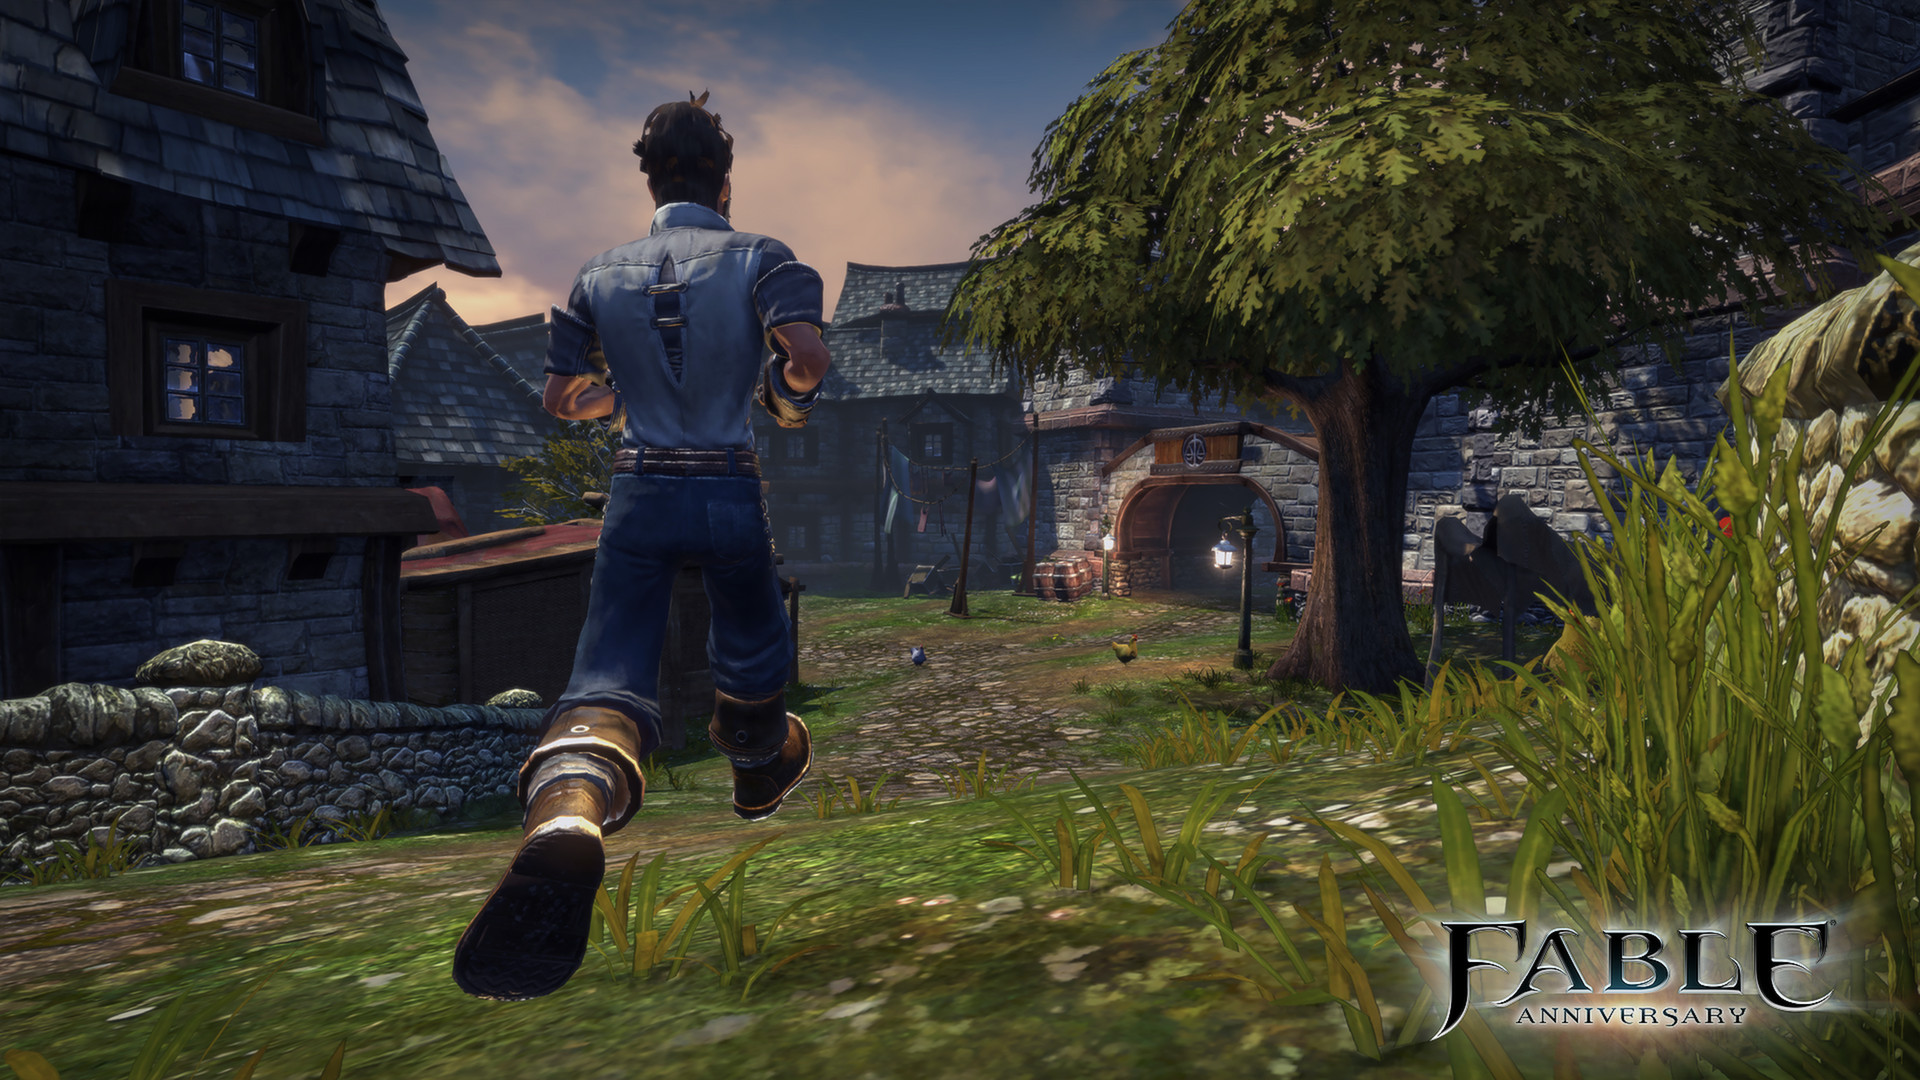 Save 75% on Fable Anniversary on Steam